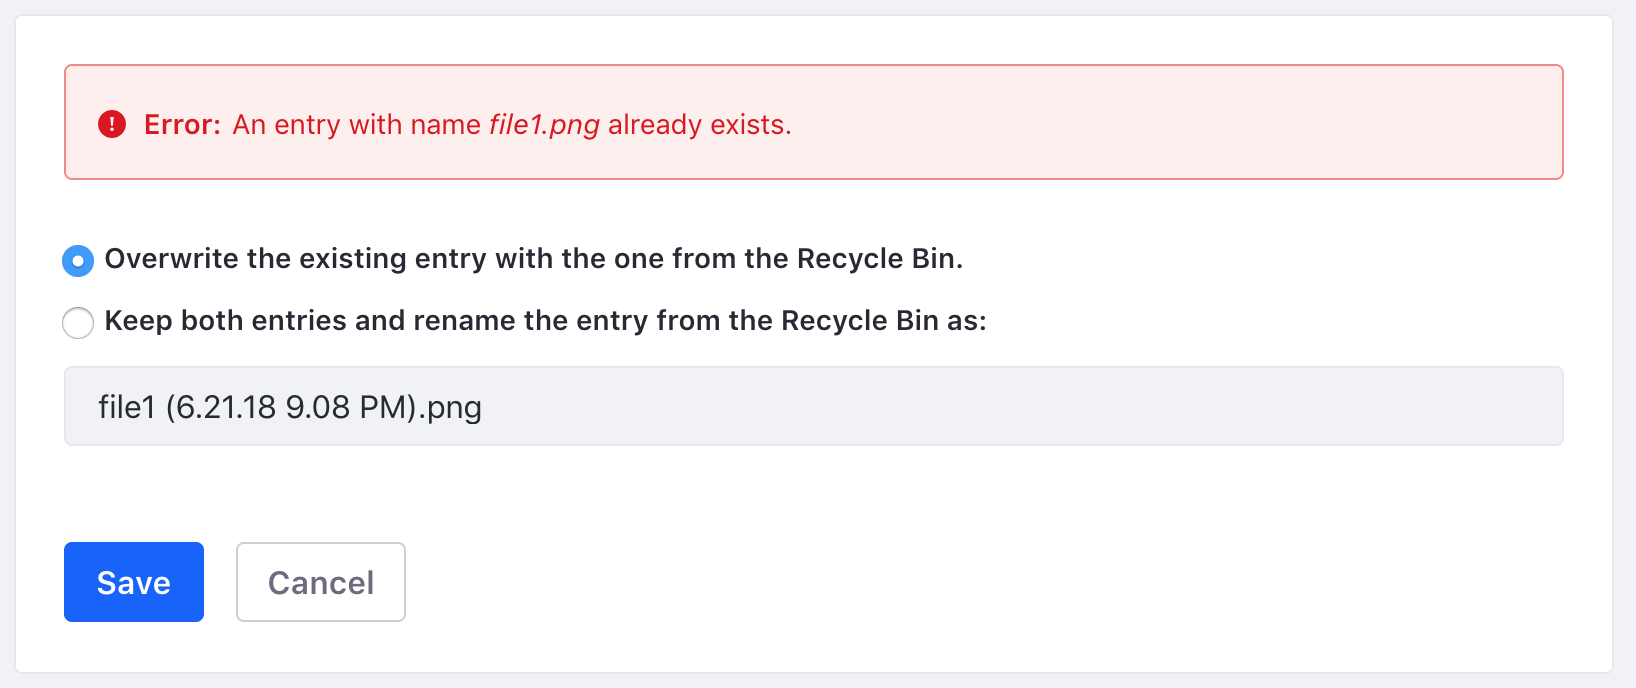 Figure 1: The Recycle Bin always scans your site/instance for duplicate file names during the restoration process.